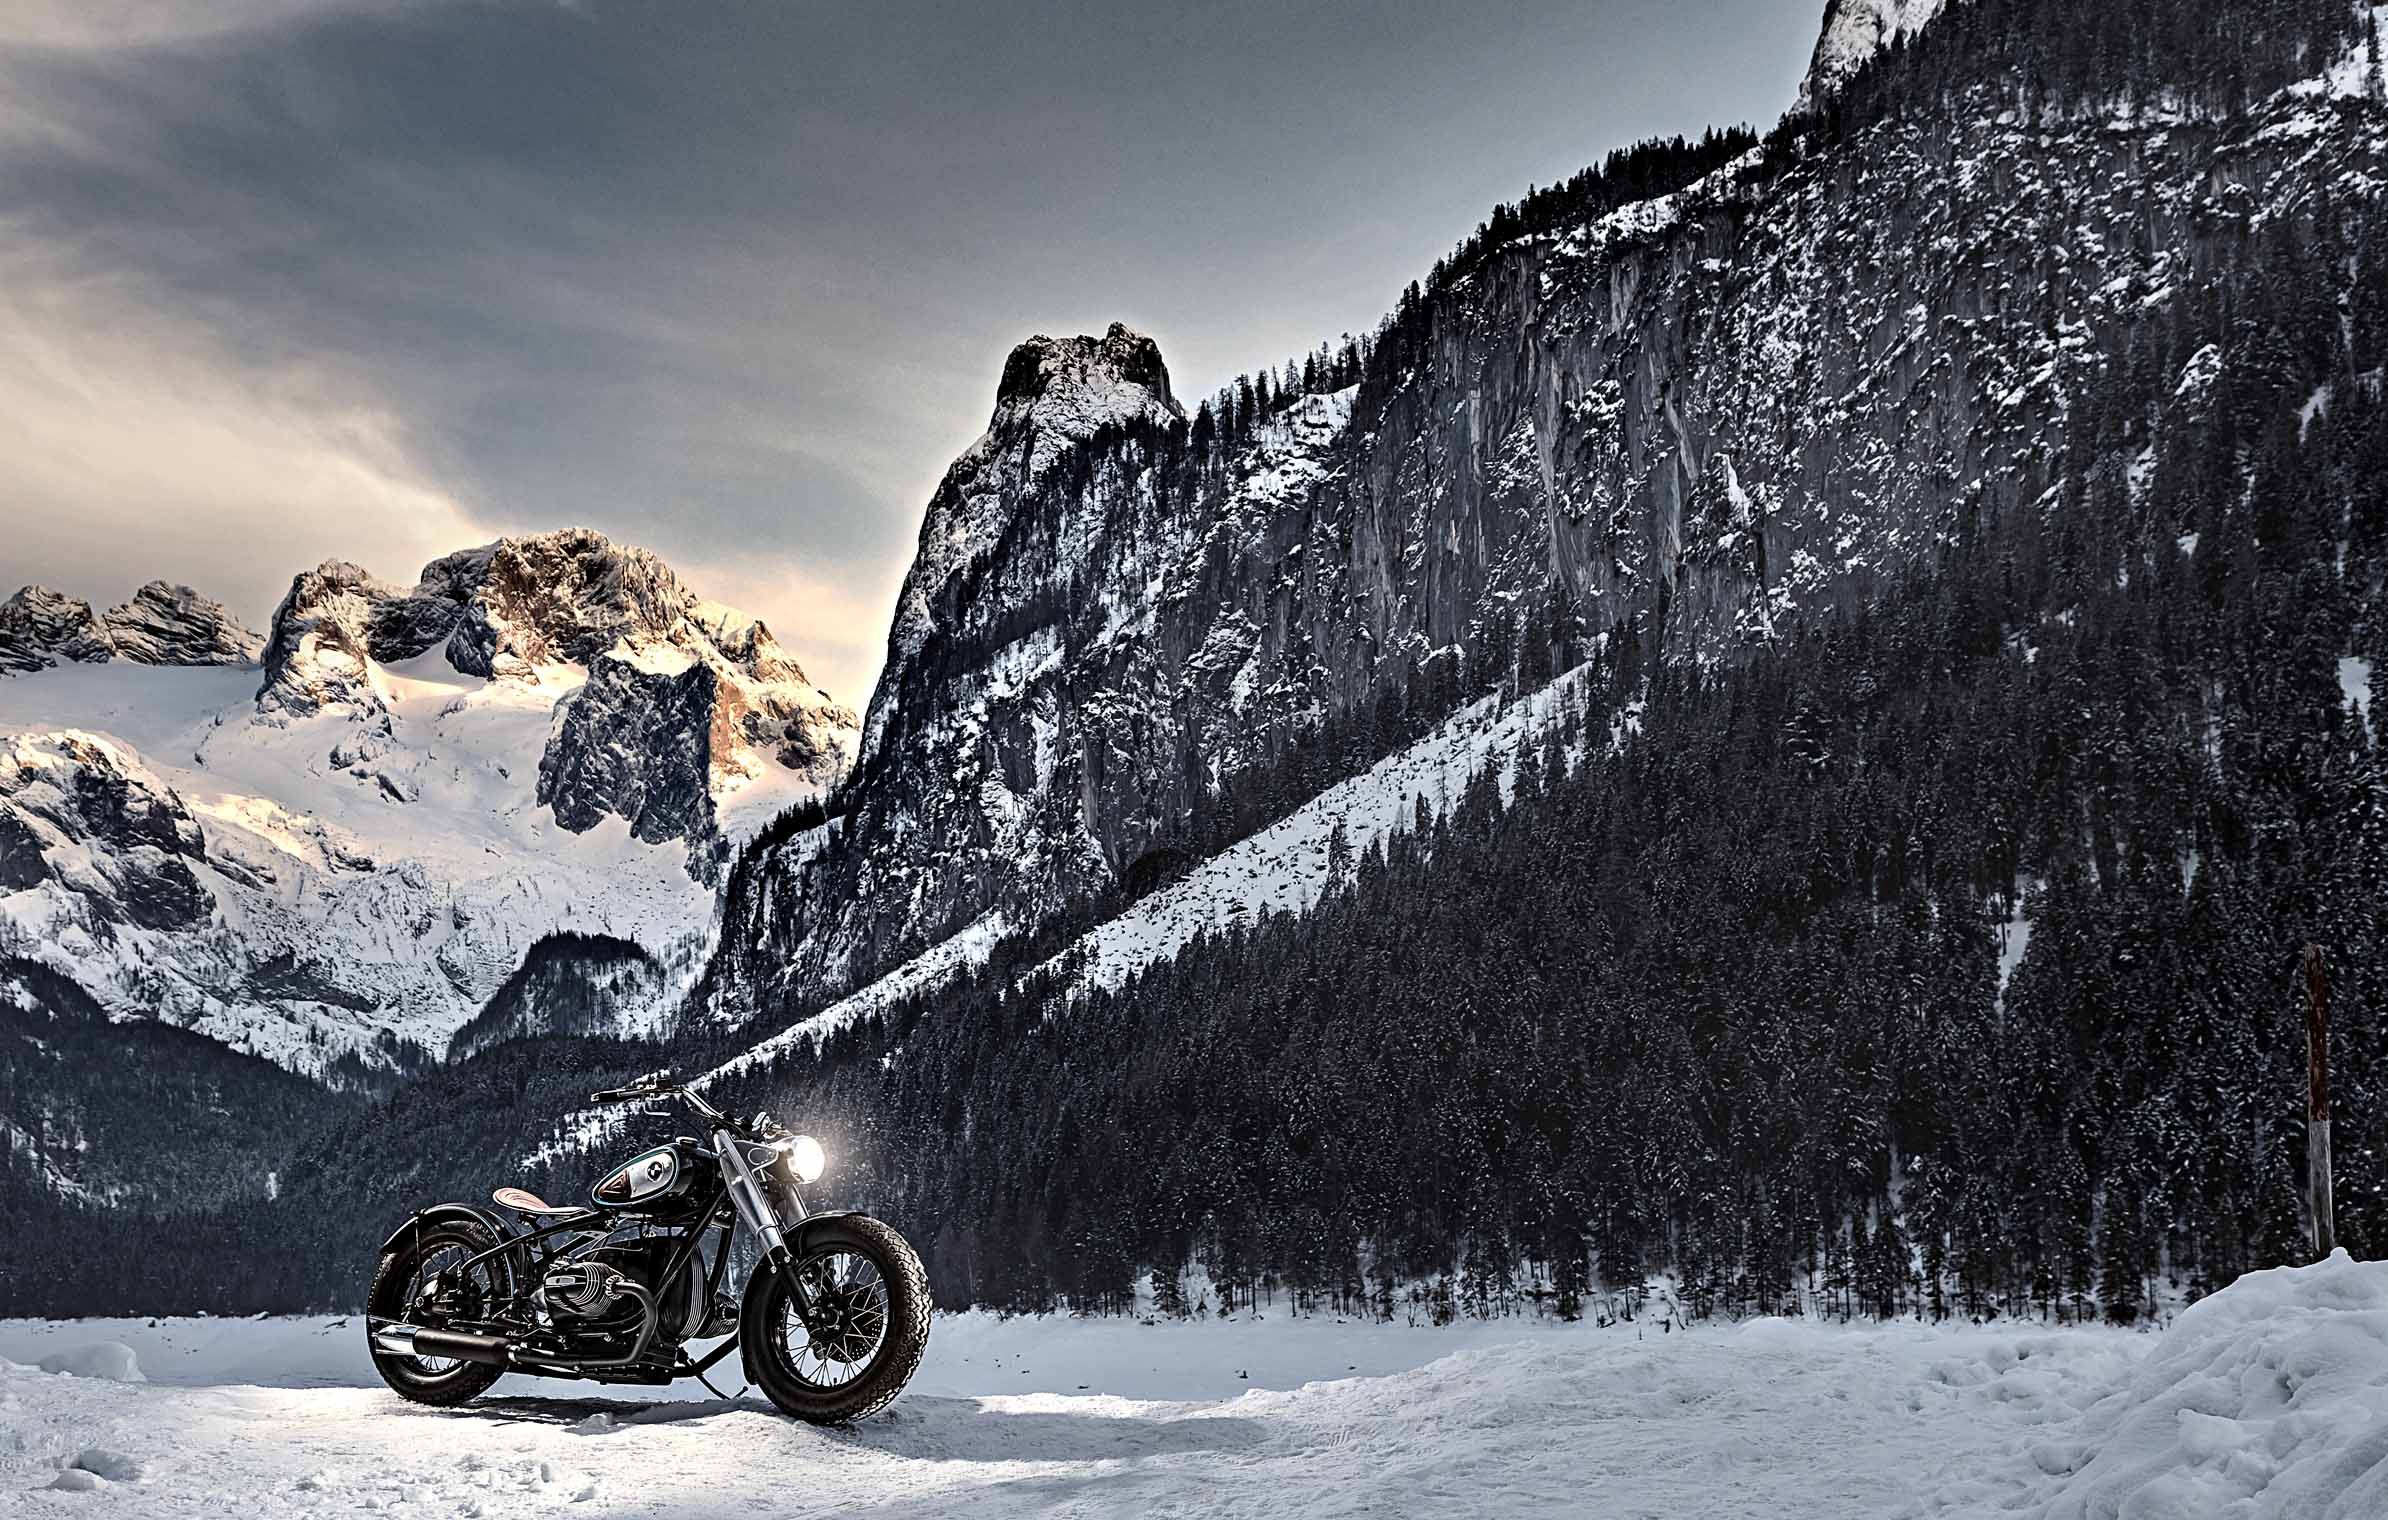 BMW_bobber_custom_motorcycle_lake_mountains_austria_dachstein2